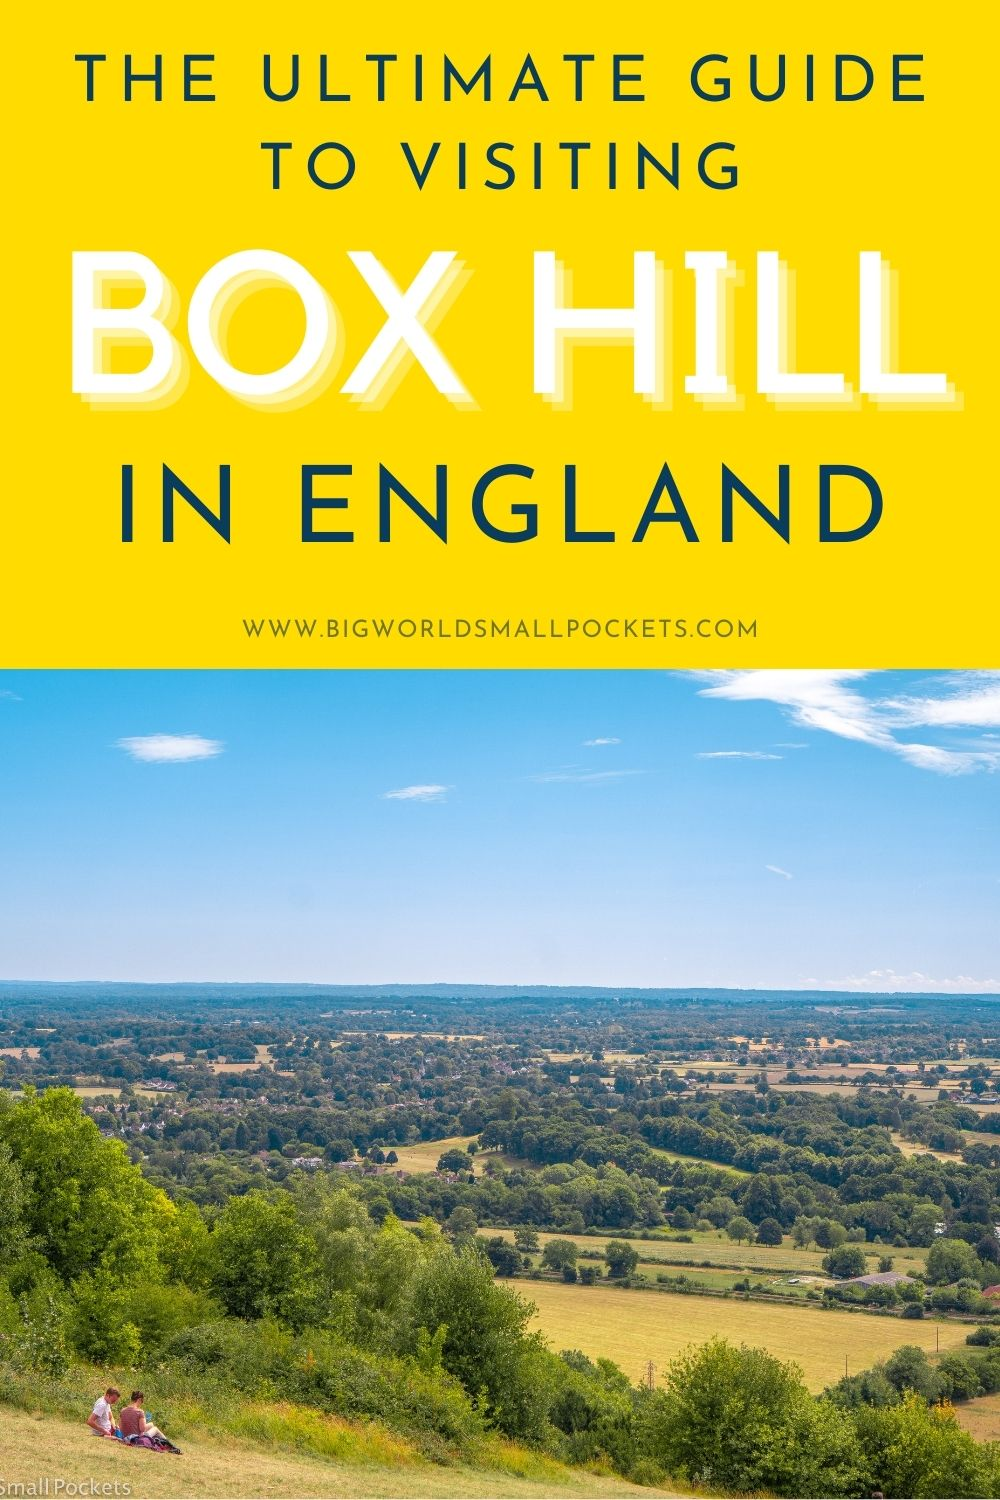 The Ultimate Guide to Visiting Box Hill, Surrey